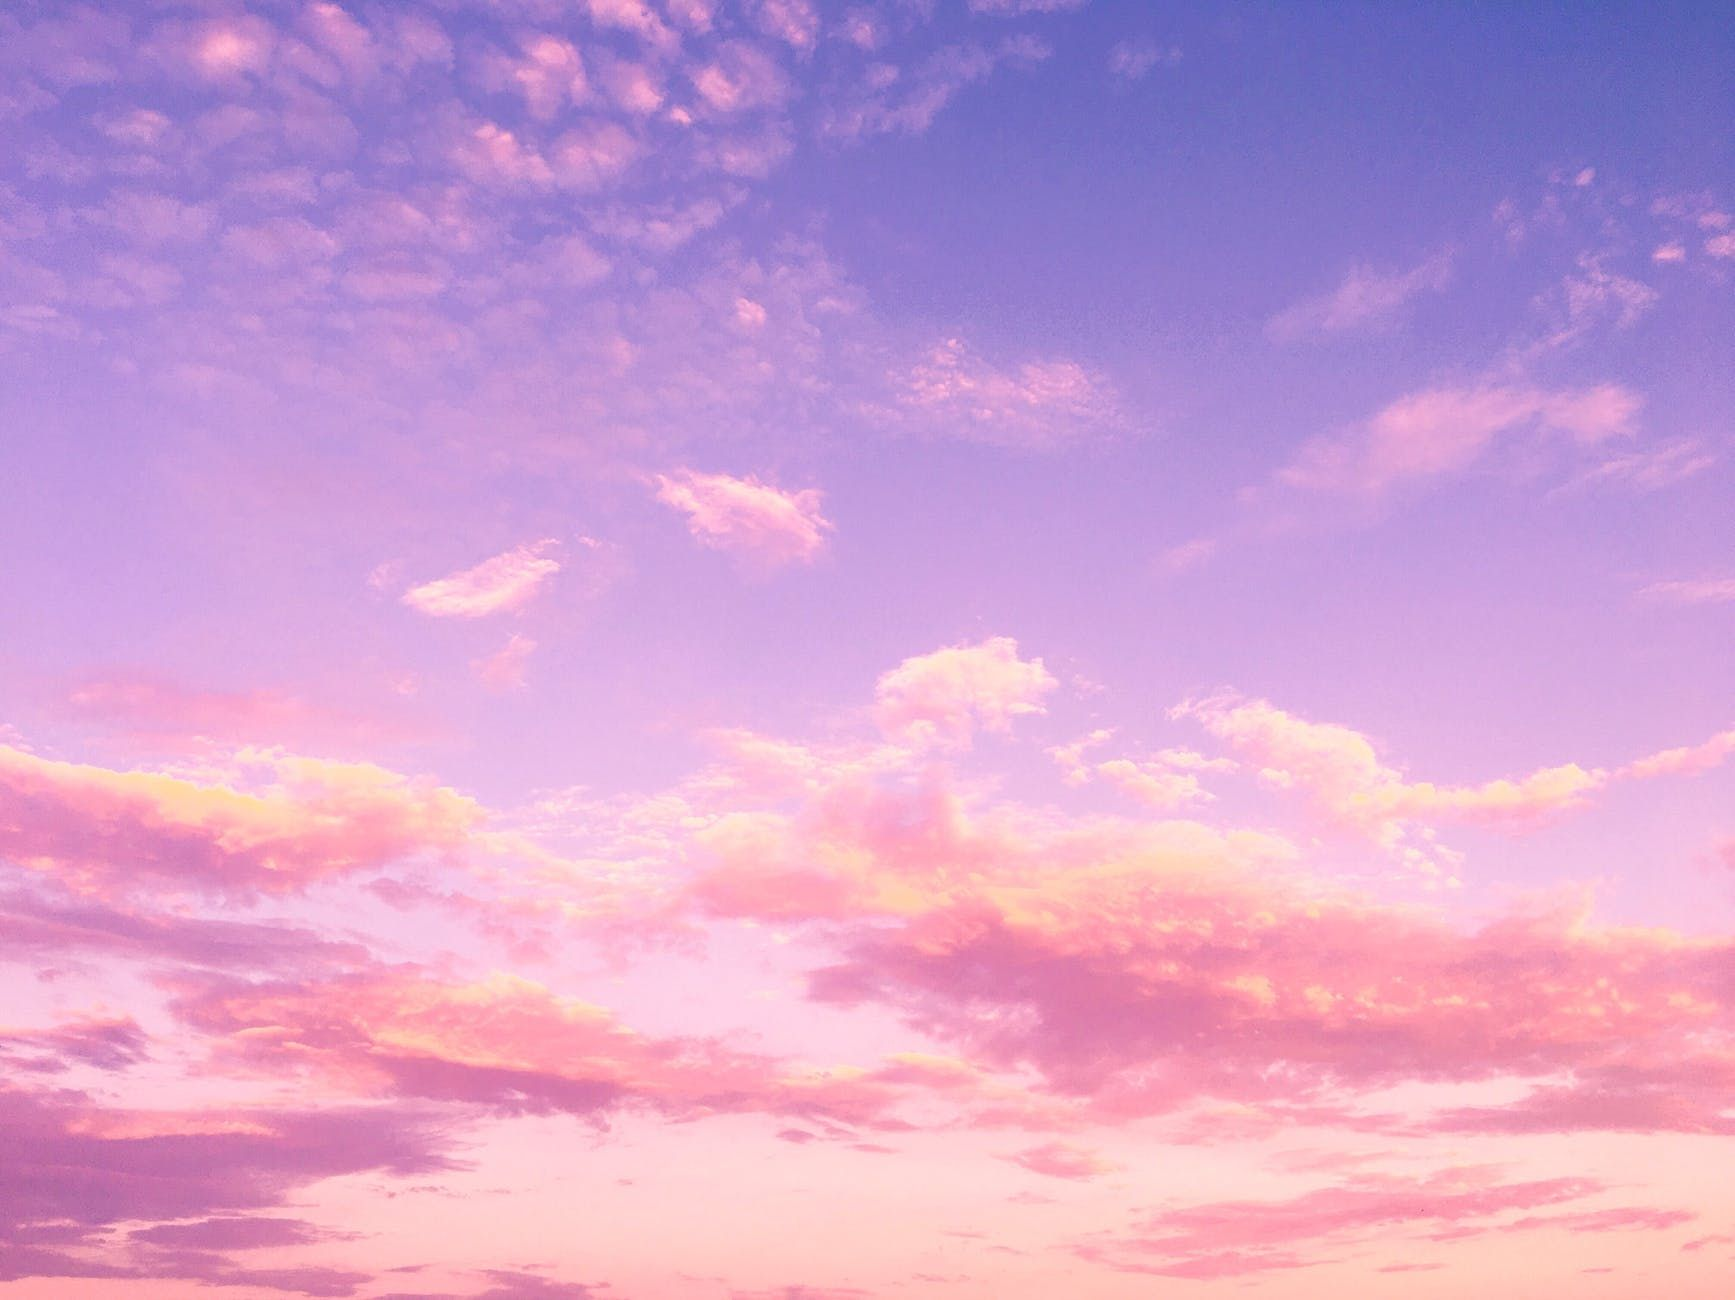 Every Pink Cloud Has A Thunderstorm Lining Pastel Pink Aesthetic Blue Sky Wallpaper Pink Clouds Aesthetic pink clouds wallpaper laptop